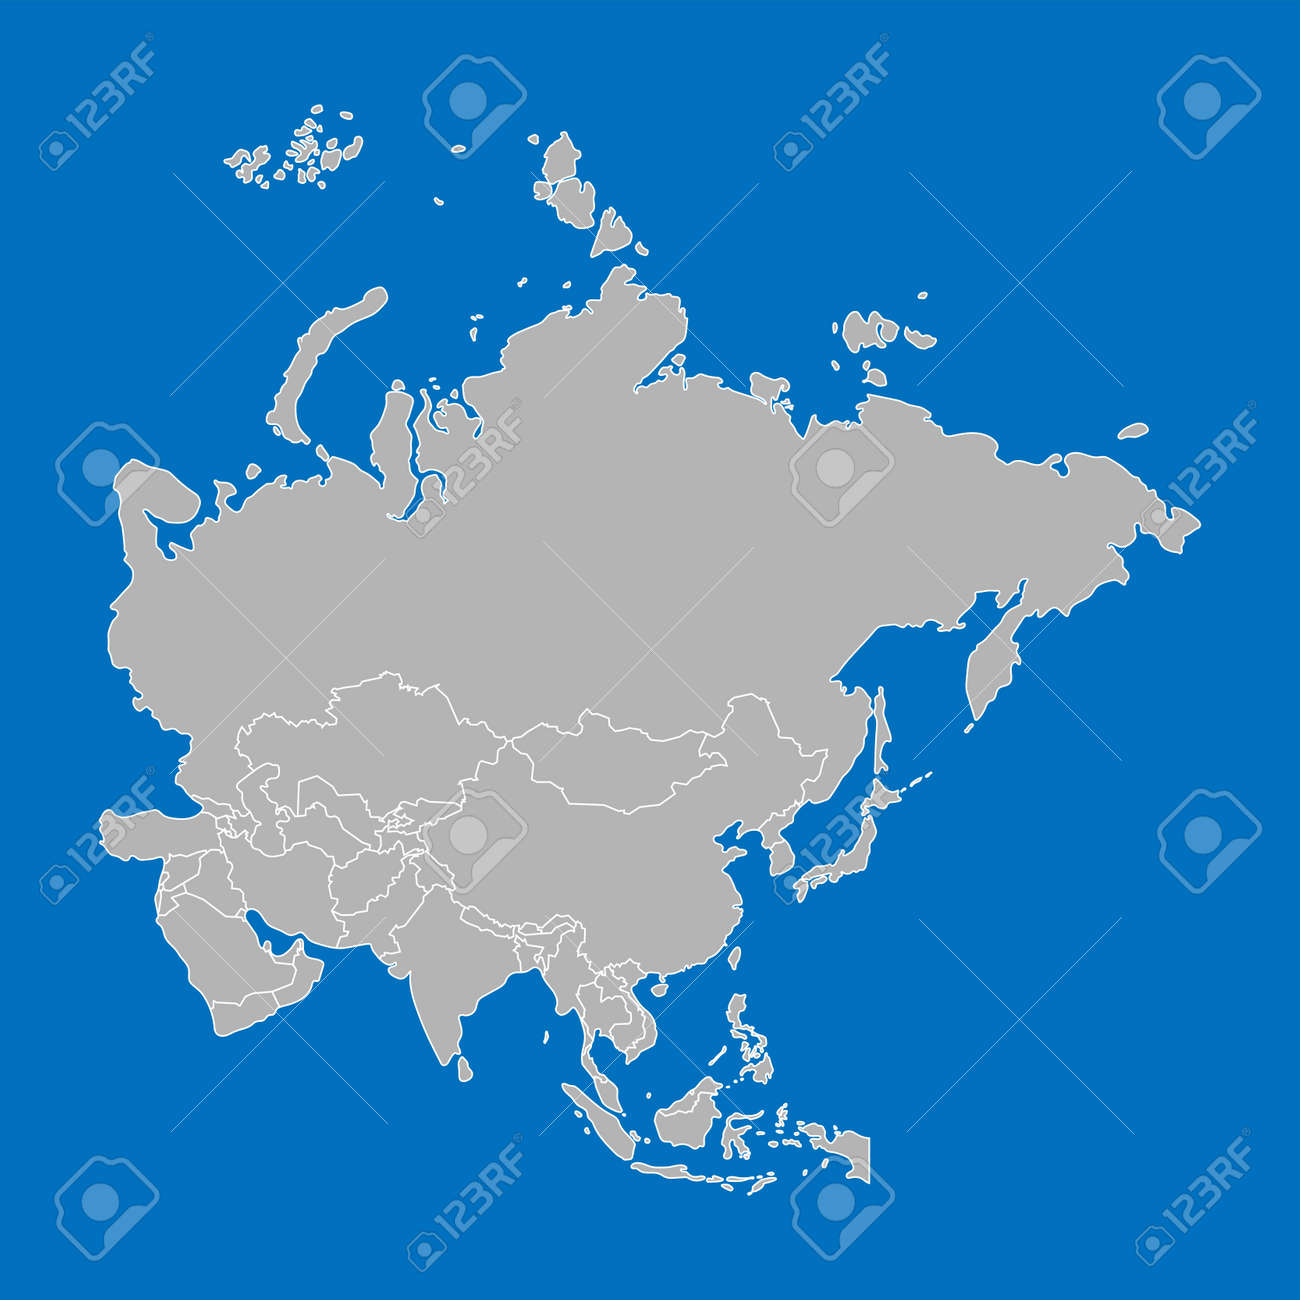 Map Of Asia With Capital Cities.Grey Asia Map With Countries And Capital Cities On The Blue Background